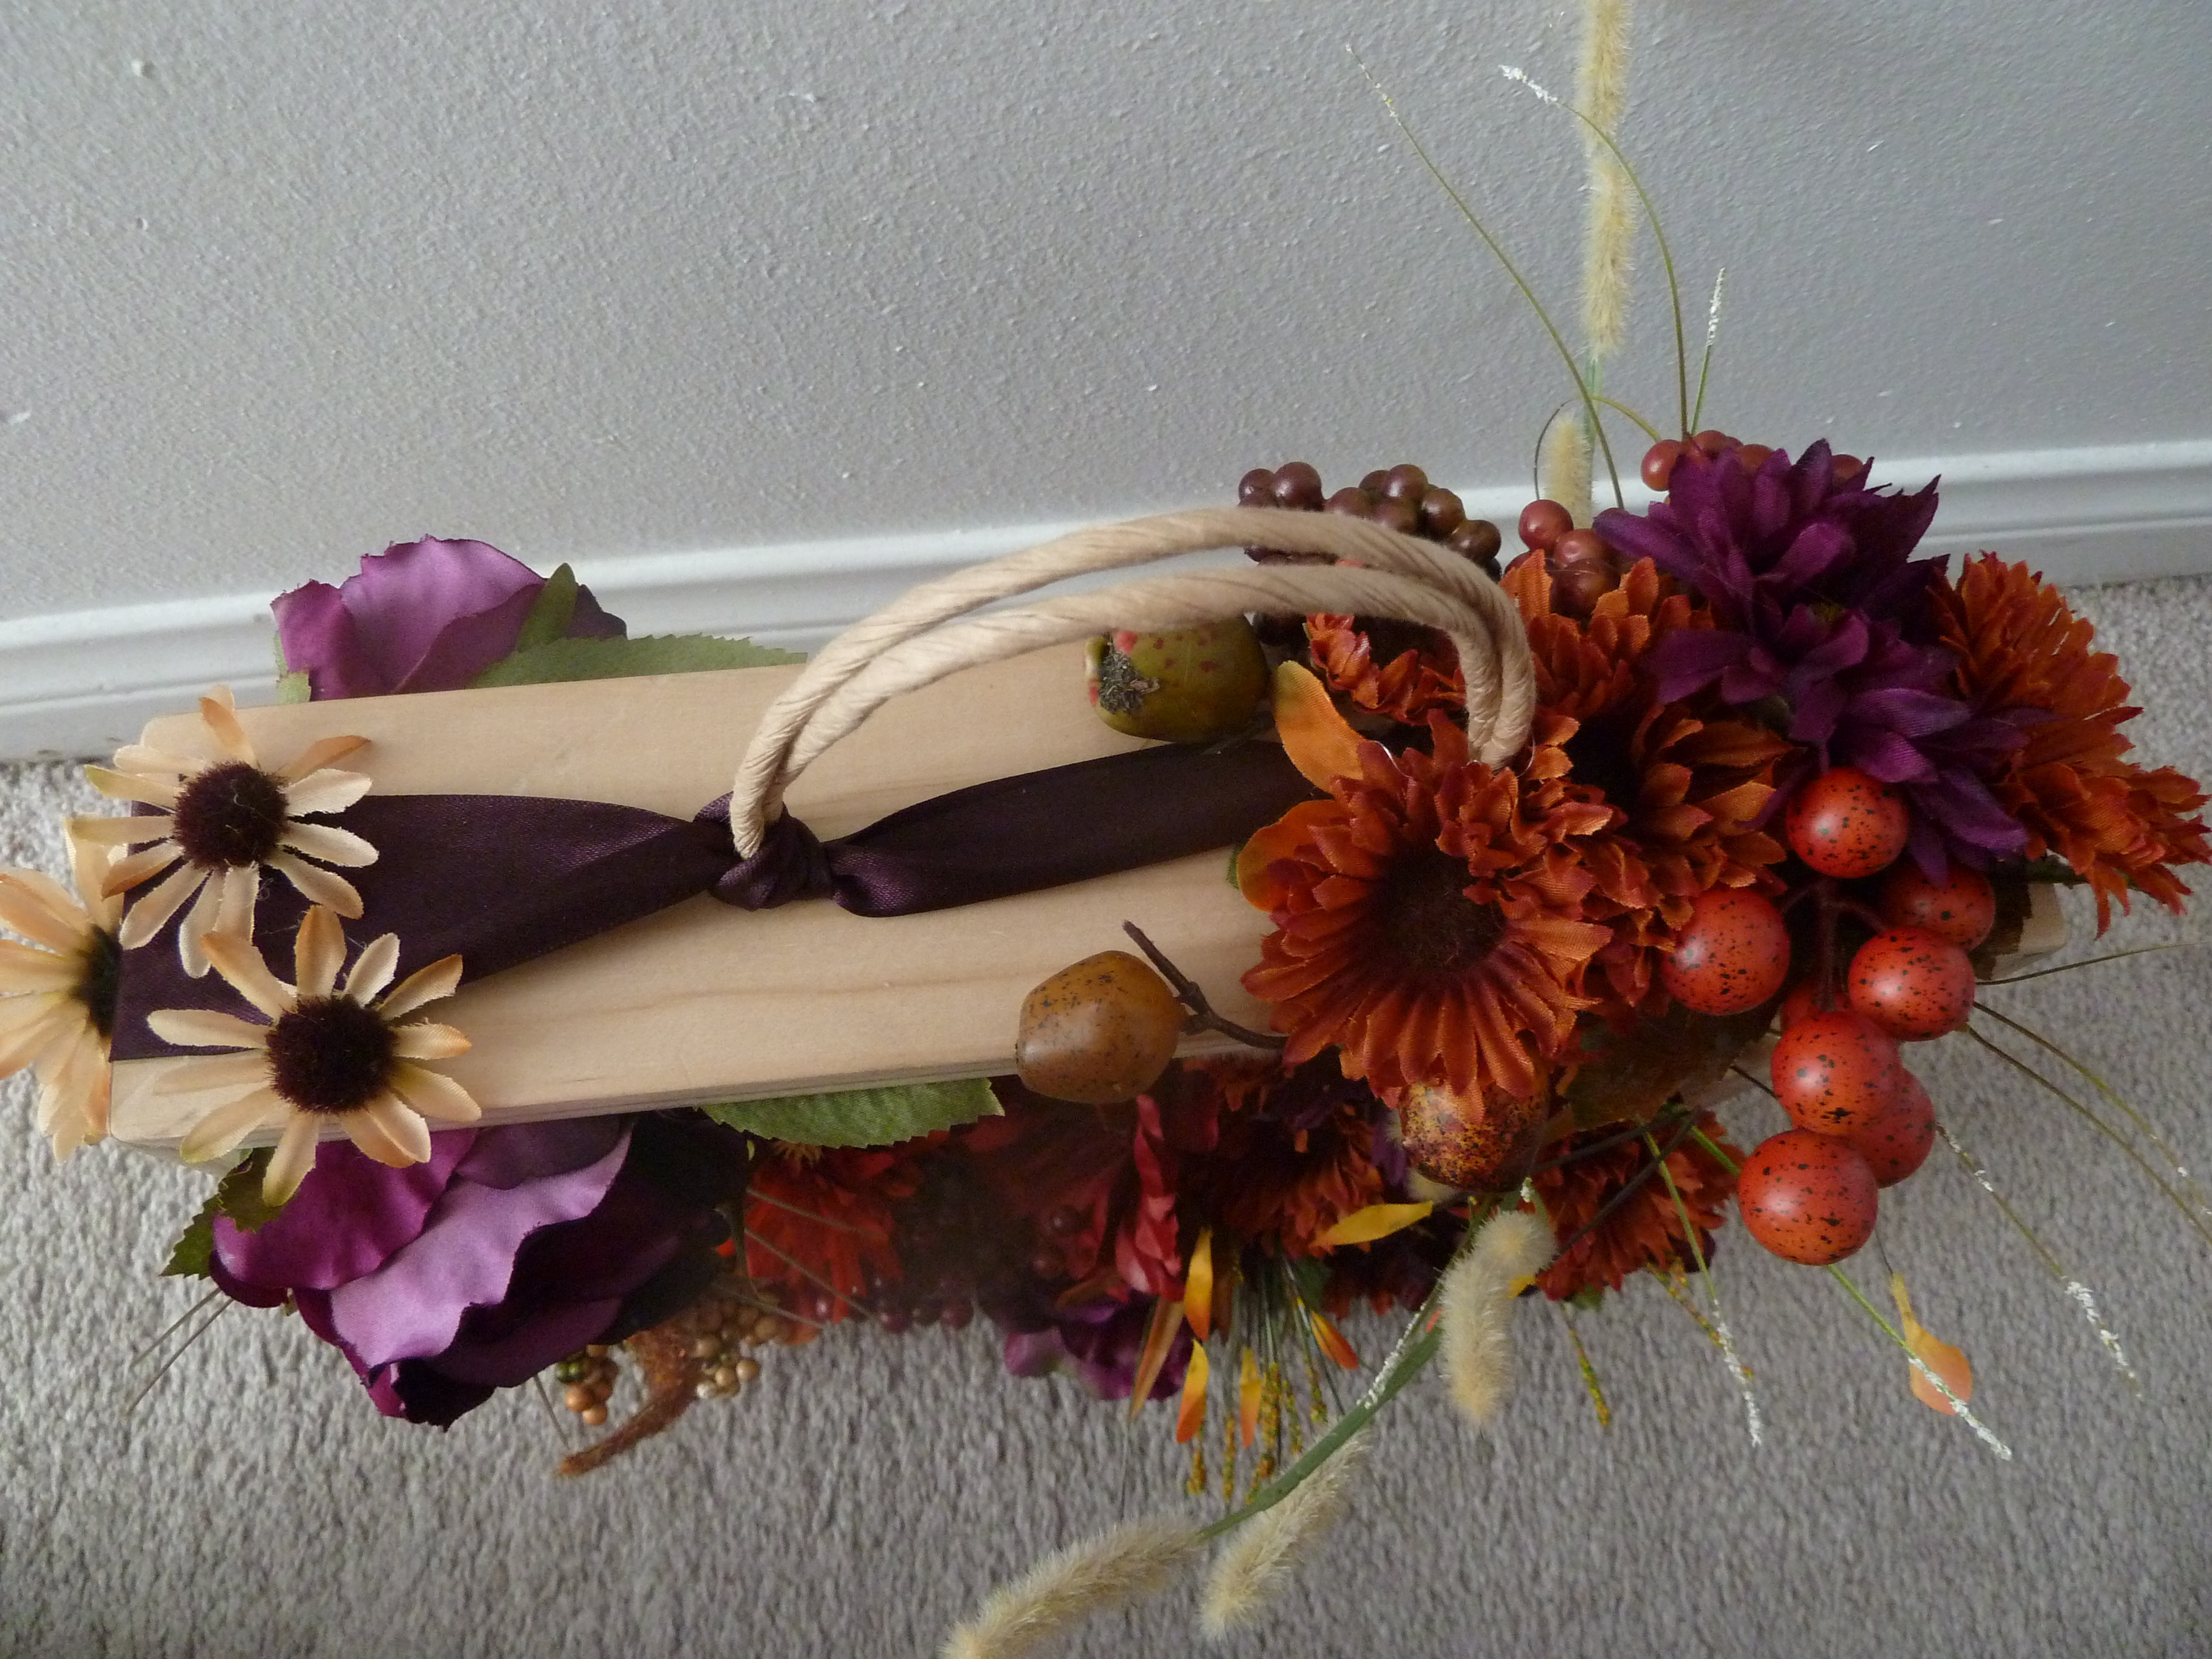 Flowers & Decor, Fall, Rustic, Flowers, Fall Wedding Flowers & Decor, Flower, Box